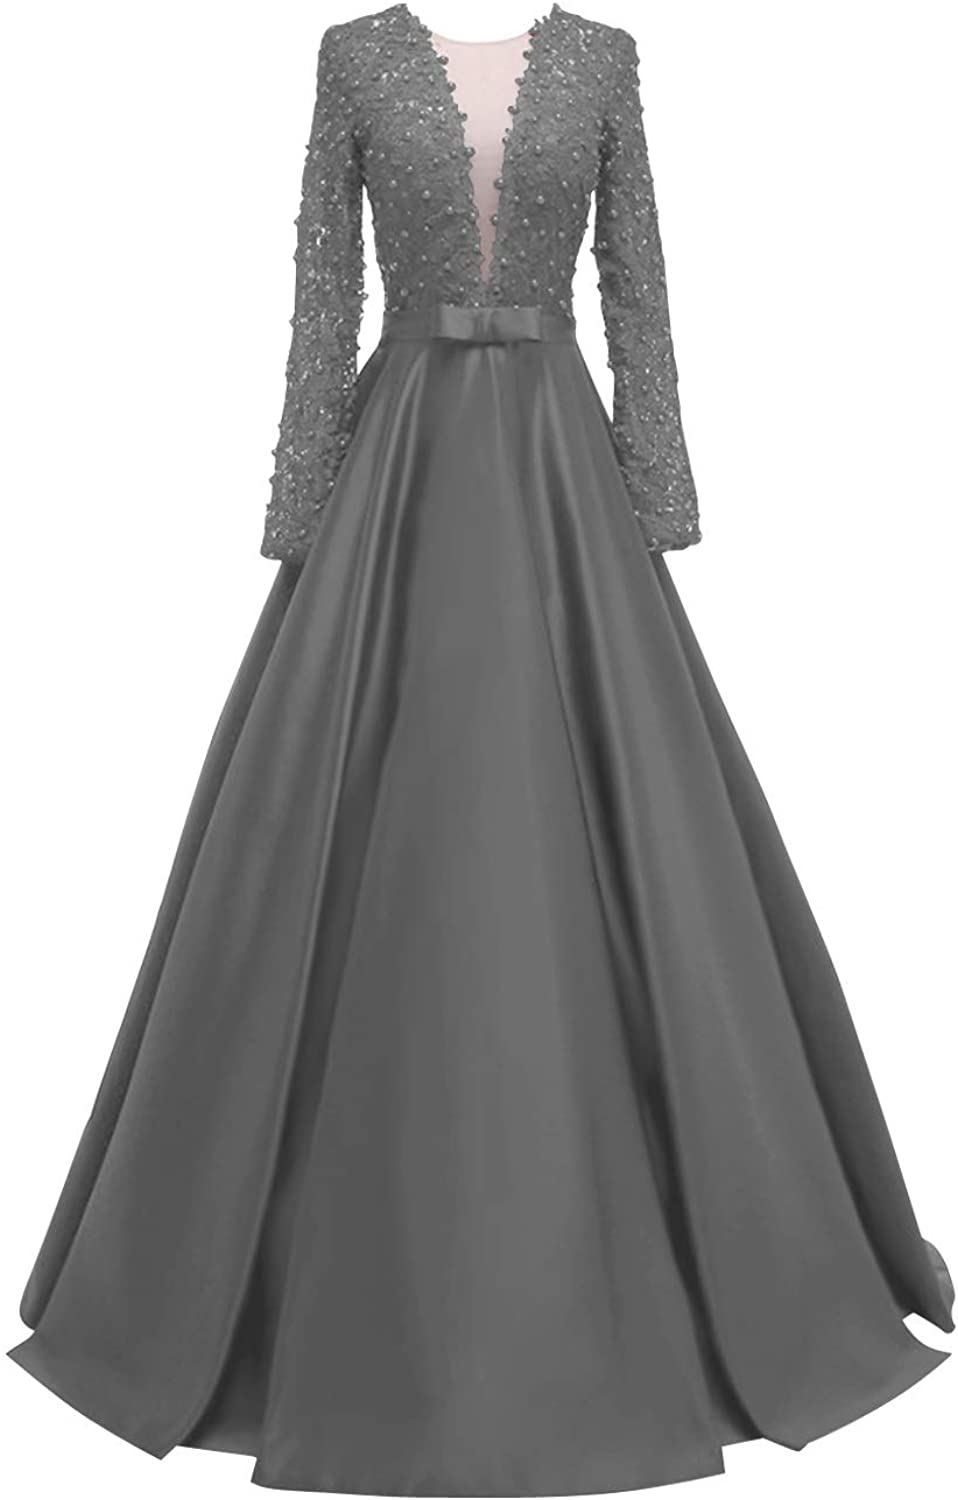 SUNFURA Women's Lace Long Sleeves Illusion Back Prom Evening Dress with Bow